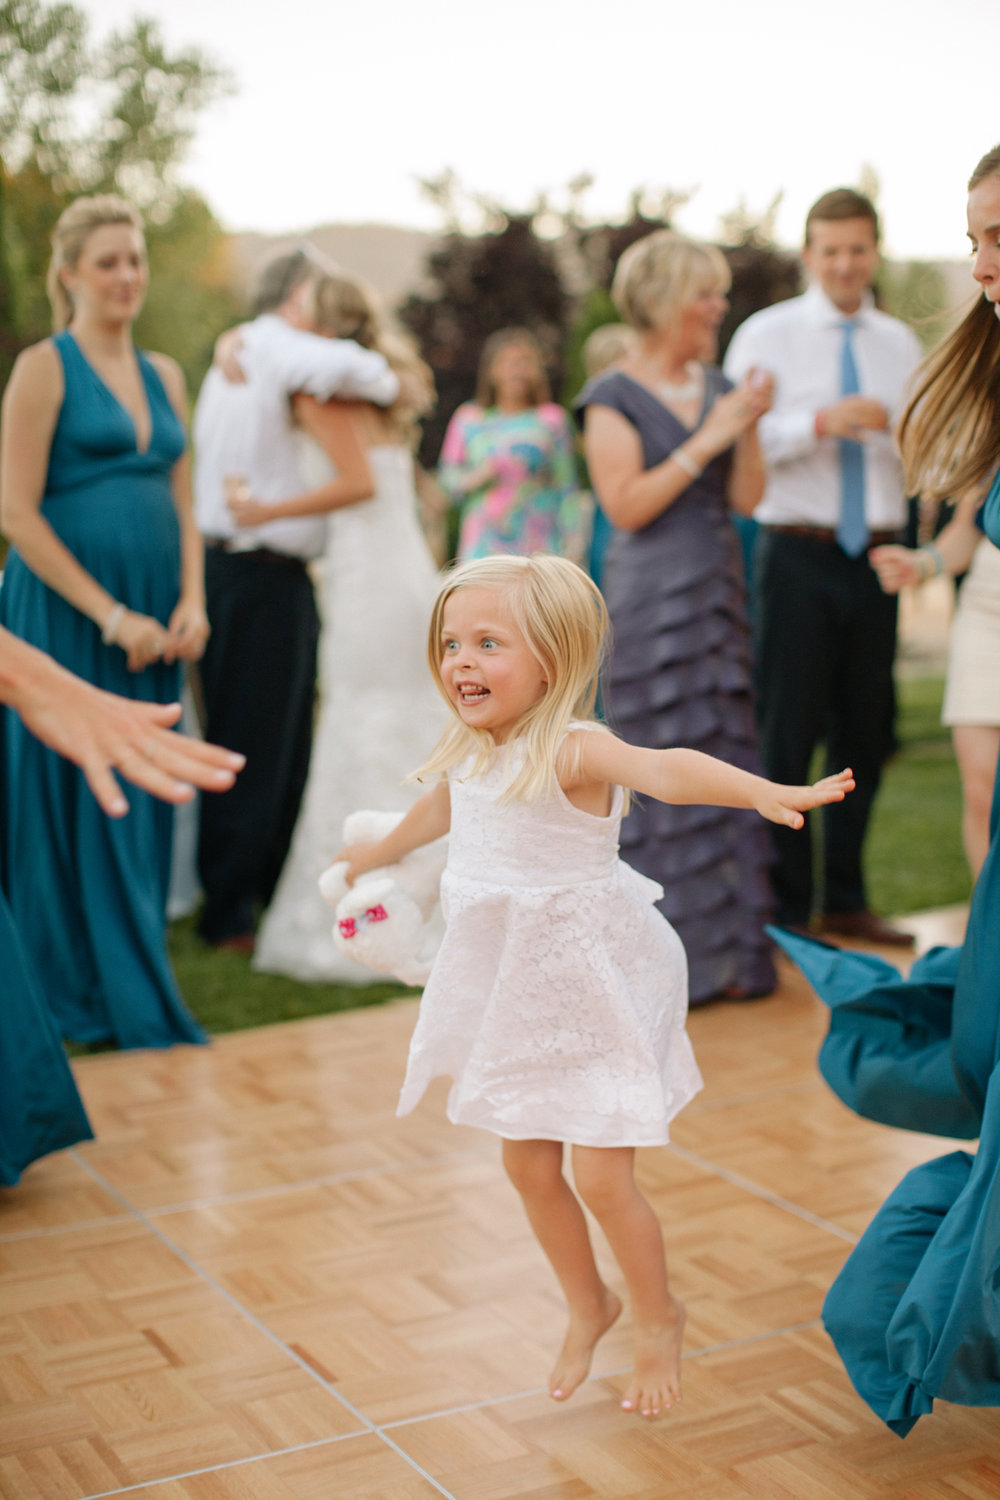 52-flower-girl-dancing.jpg